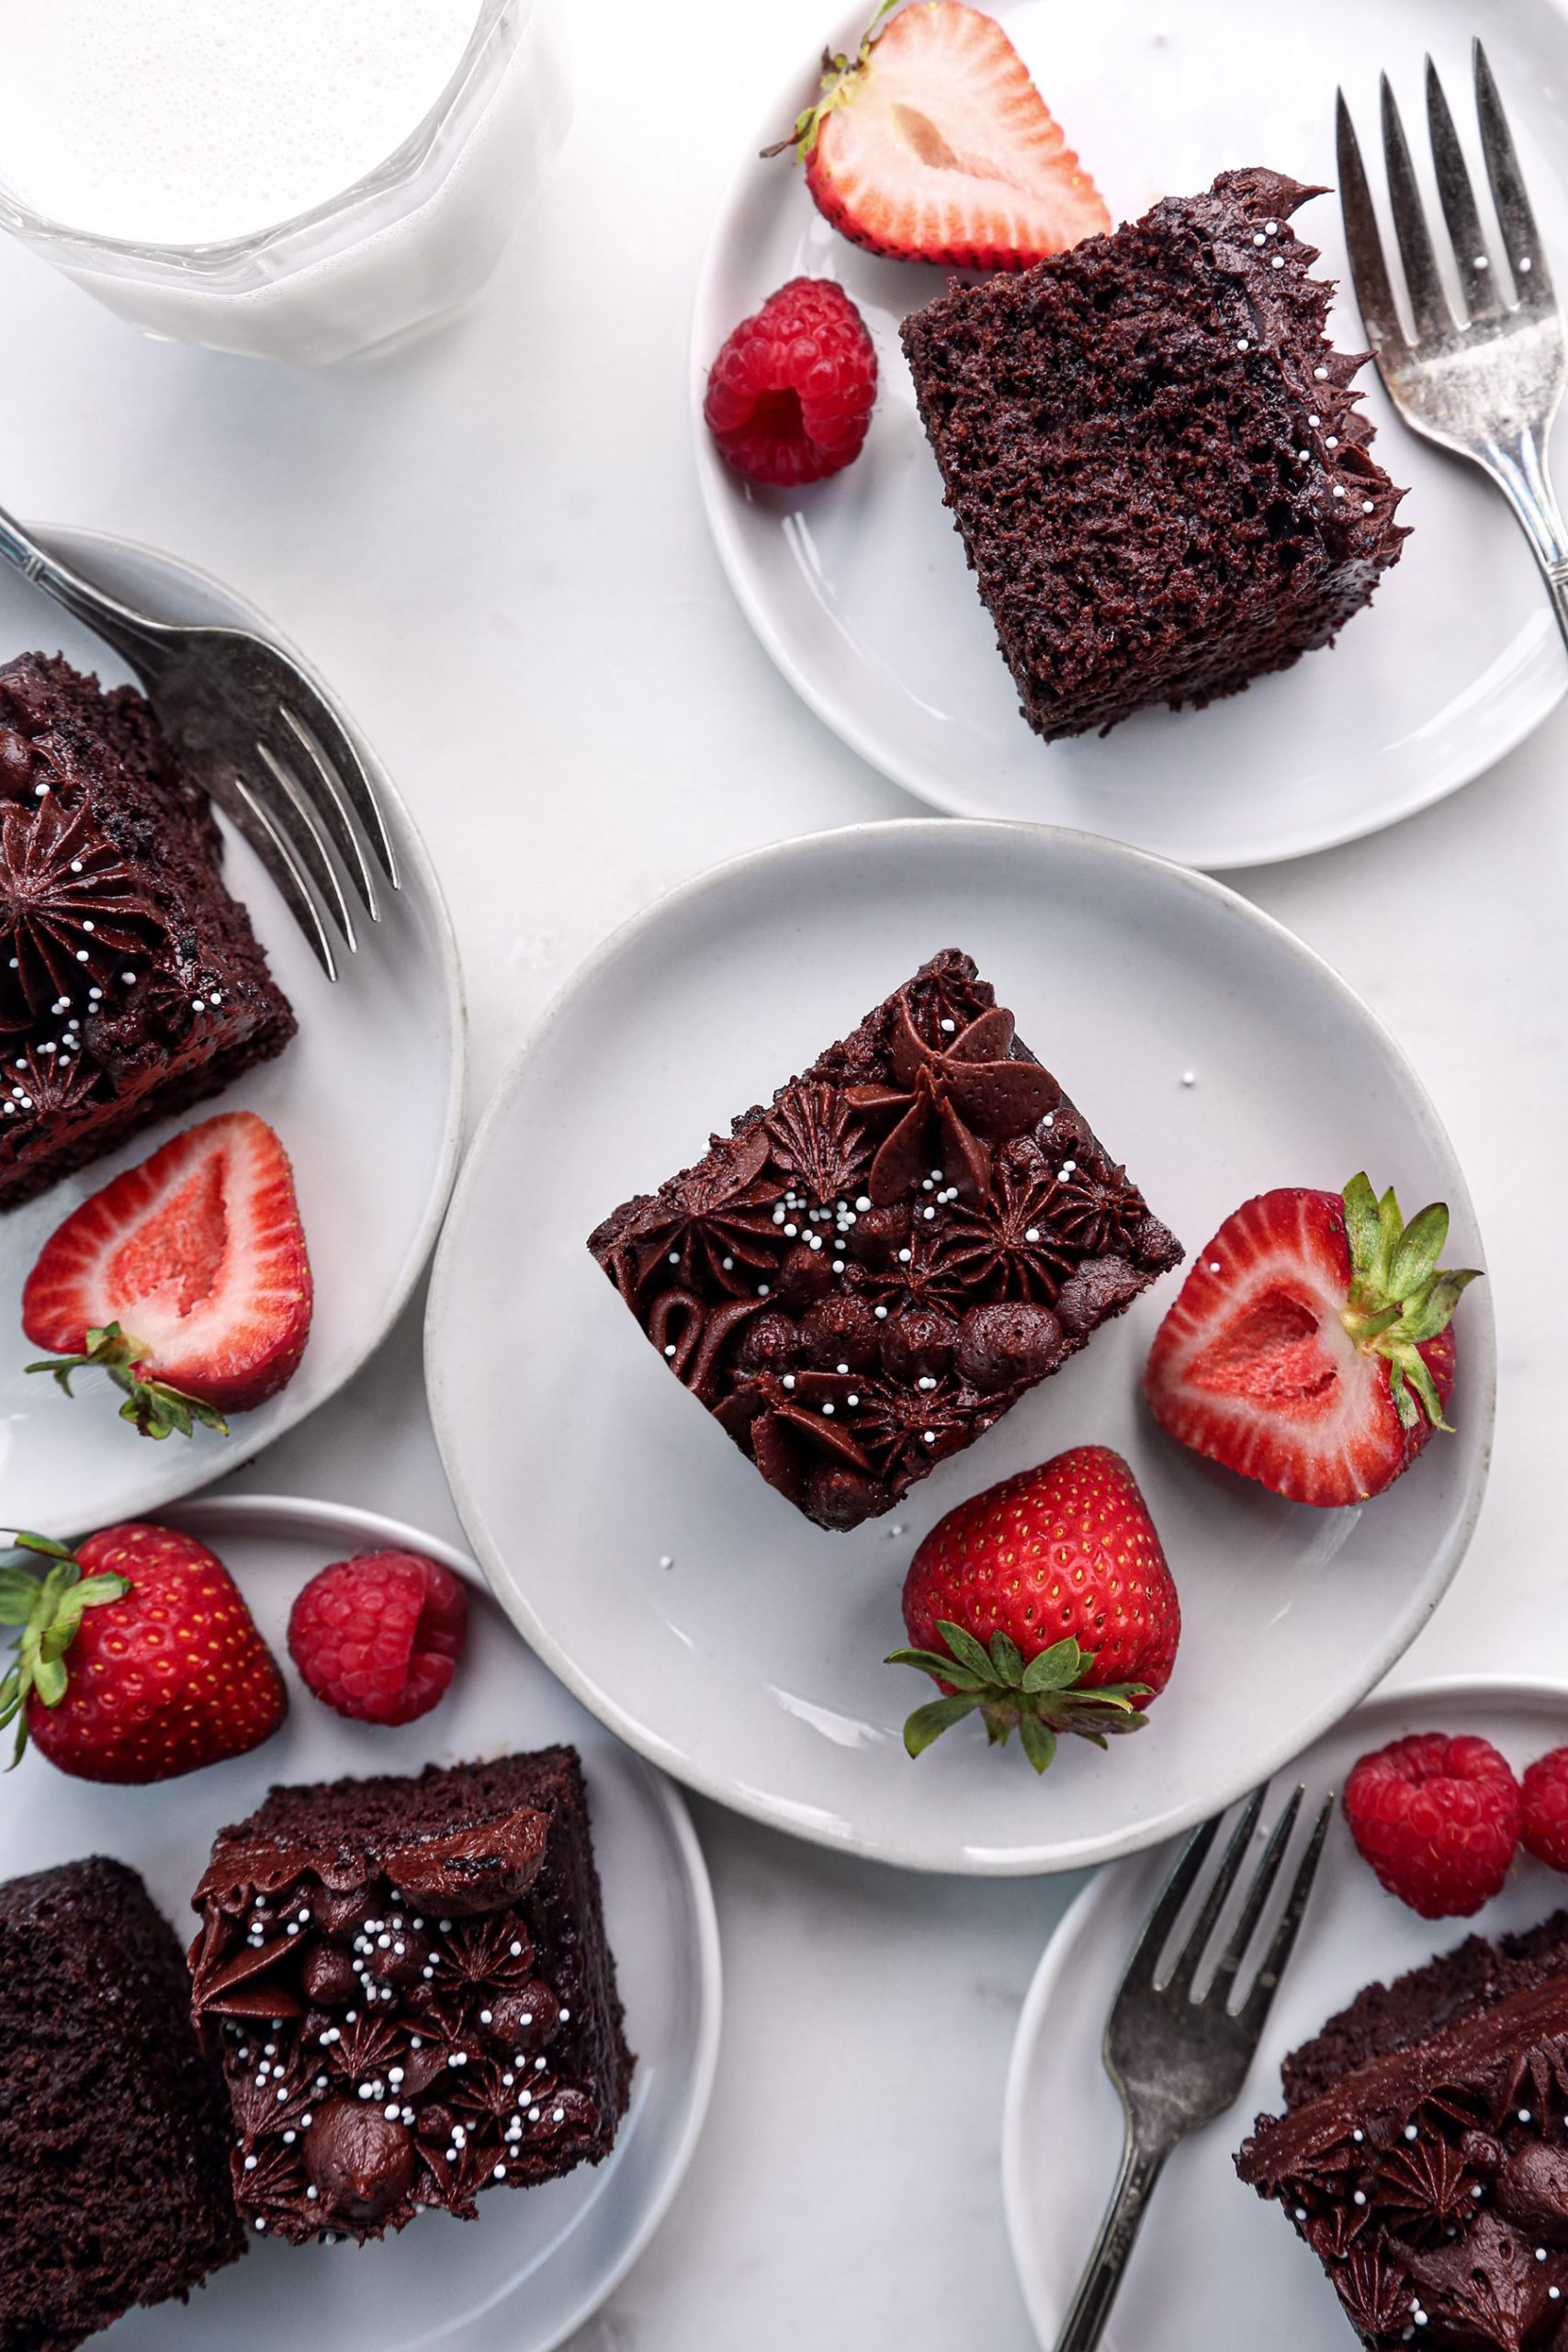 Chocolate Snack Cake Slices with Chocolate Buttercream with Berries | Vegan with Gluten Free Option